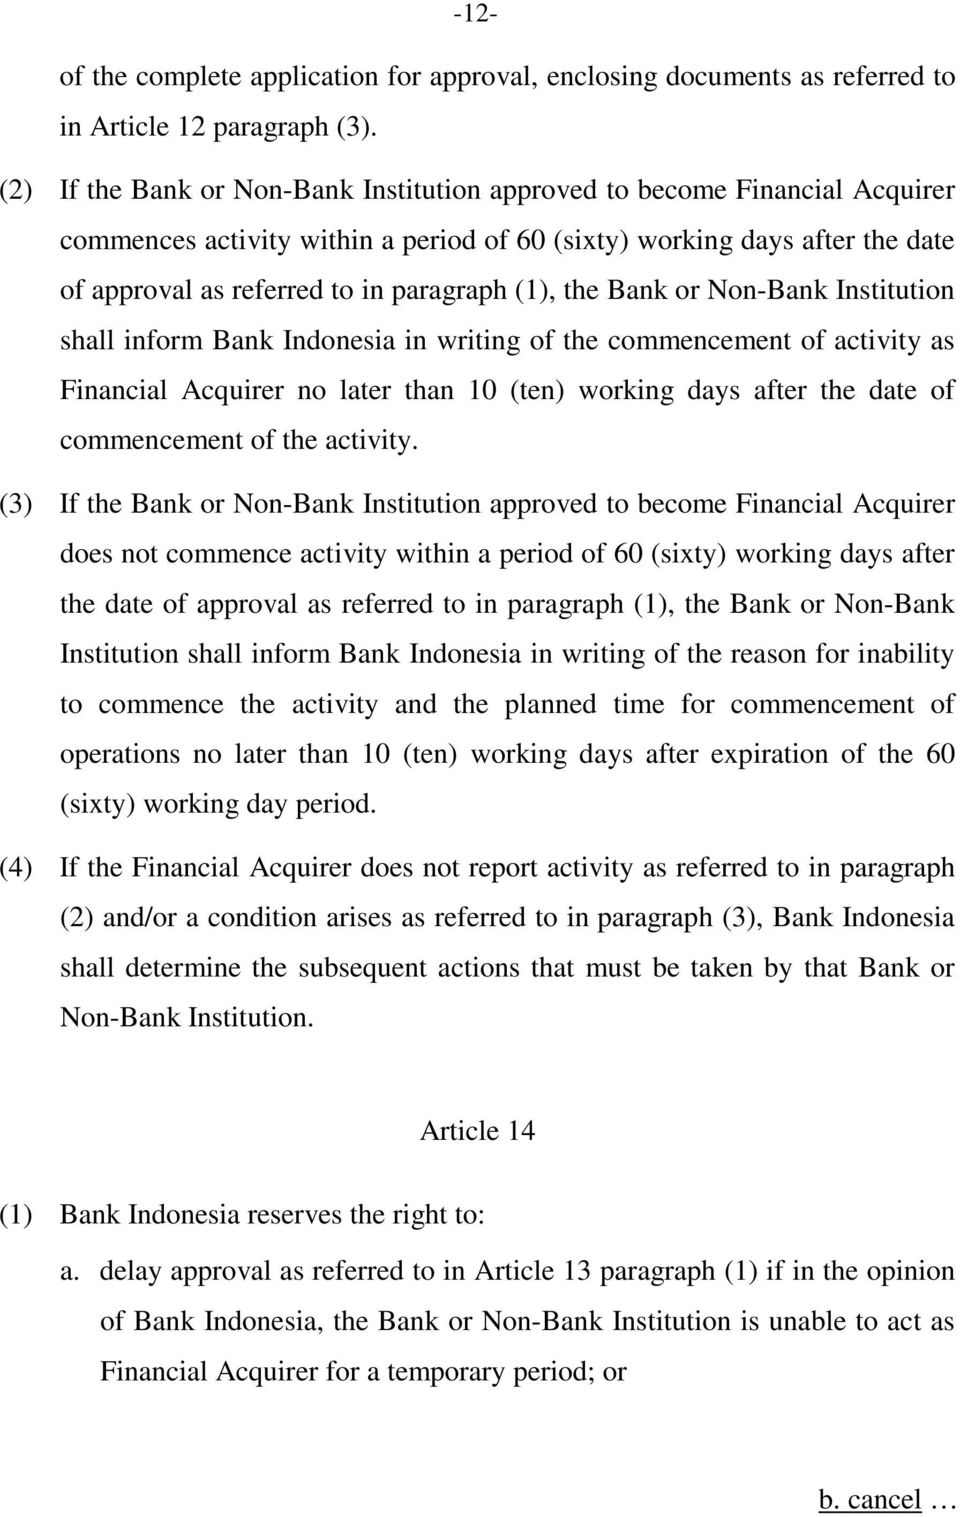 the Bank or Non-Bank Institution shall inform Bank Indonesia in writing of the commencement of activity as Financial Acquirer no later than 10 (ten) working days after the date of commencement of the